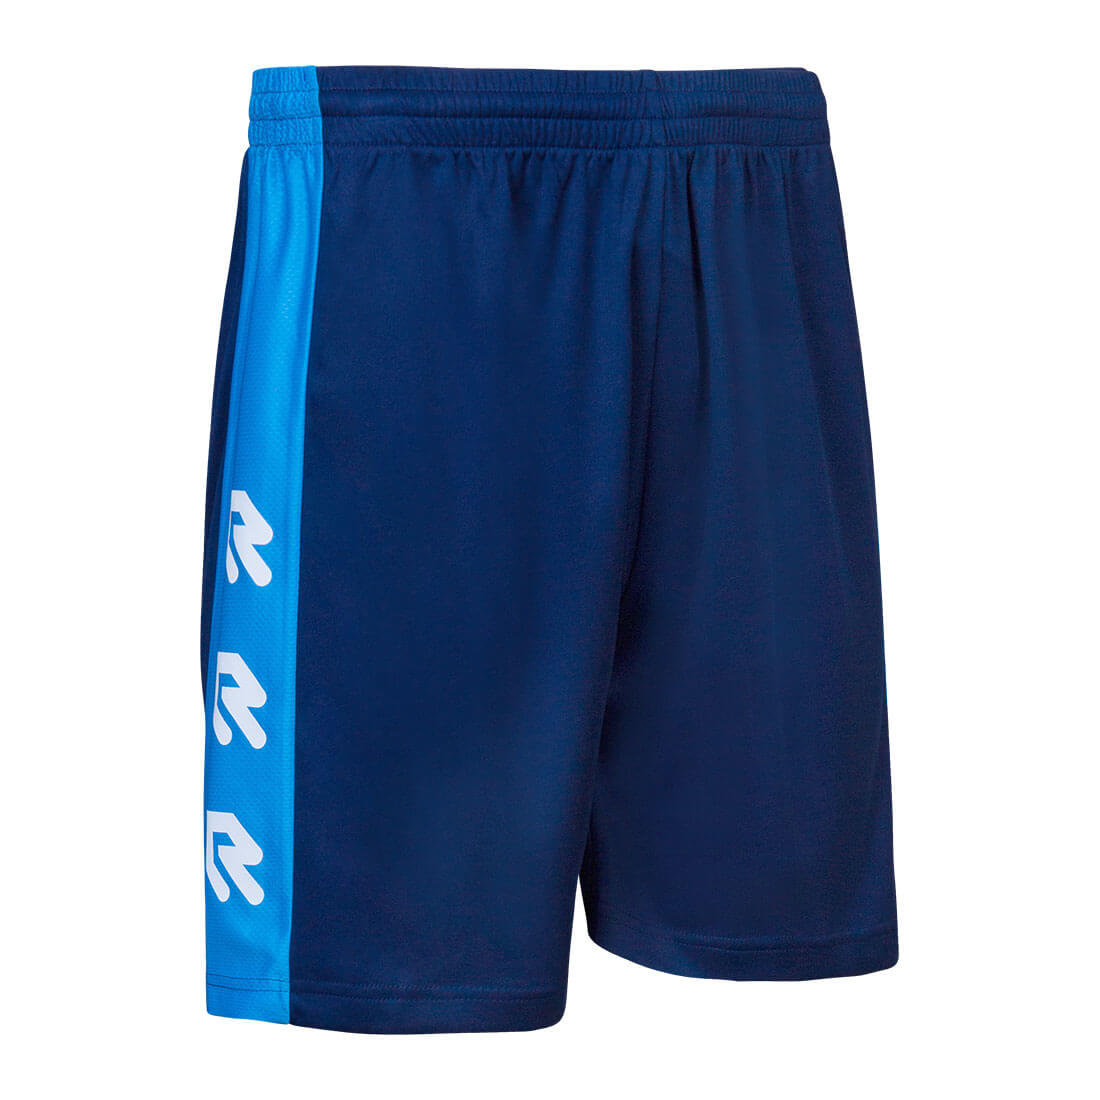 Robey Performance Short - Navy Sky Blue